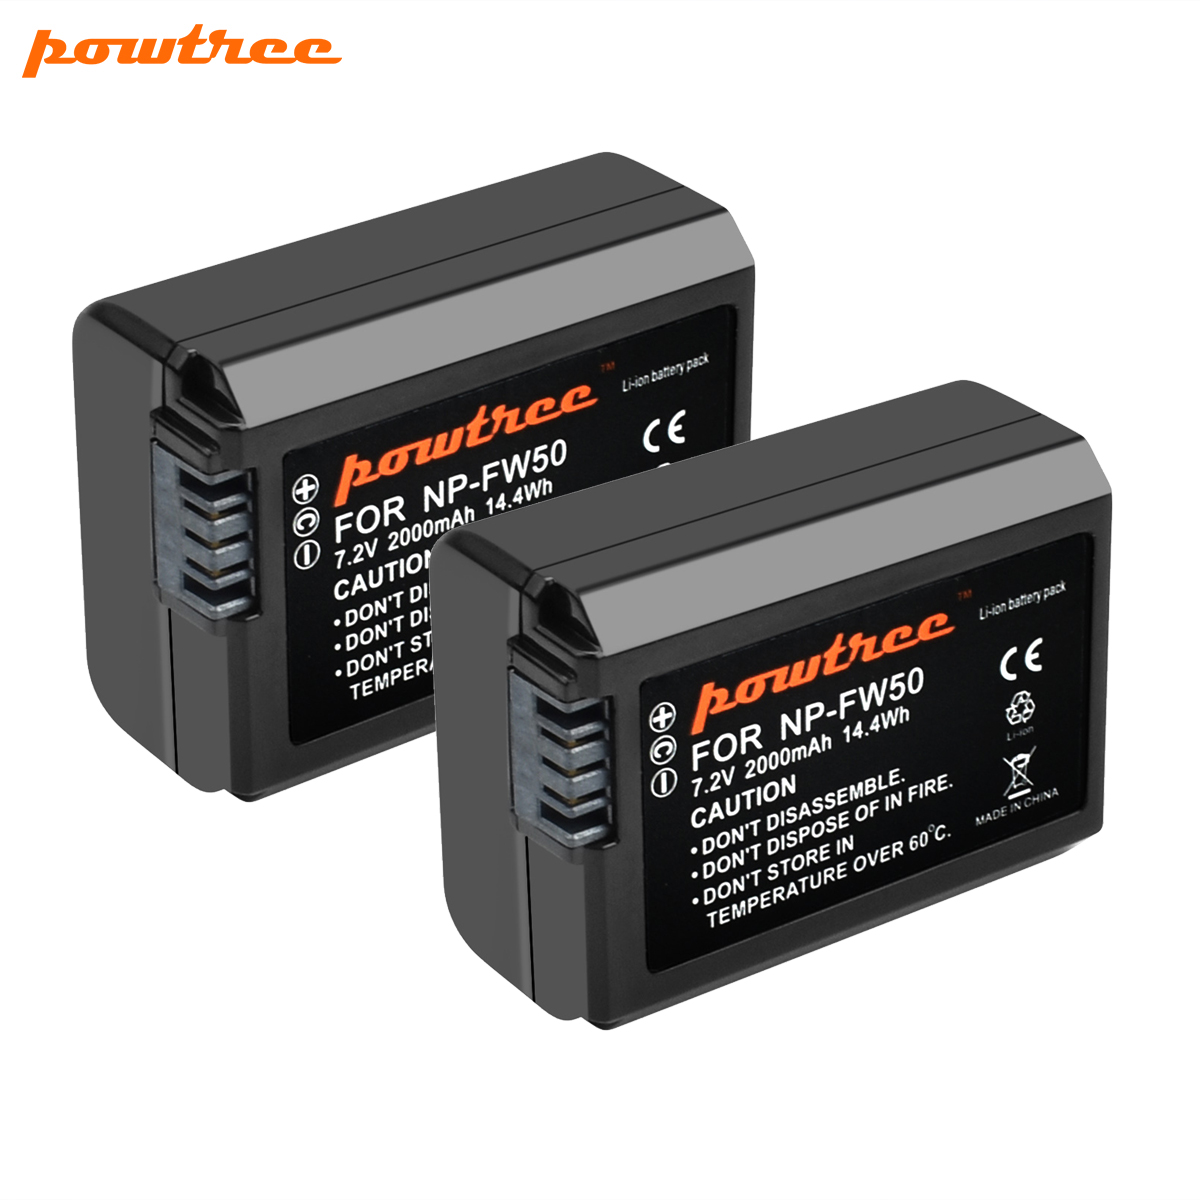 Turpow For <font><b>Sony</b></font> 7.2V 2000mAh NP-FW50 NPFW50 NP FW50 Camera Battery For <font><b>Alpha</b></font> 6500 6300 6000 5000 <font><b>3000</b></font> a7R a7S a7S II a7II image